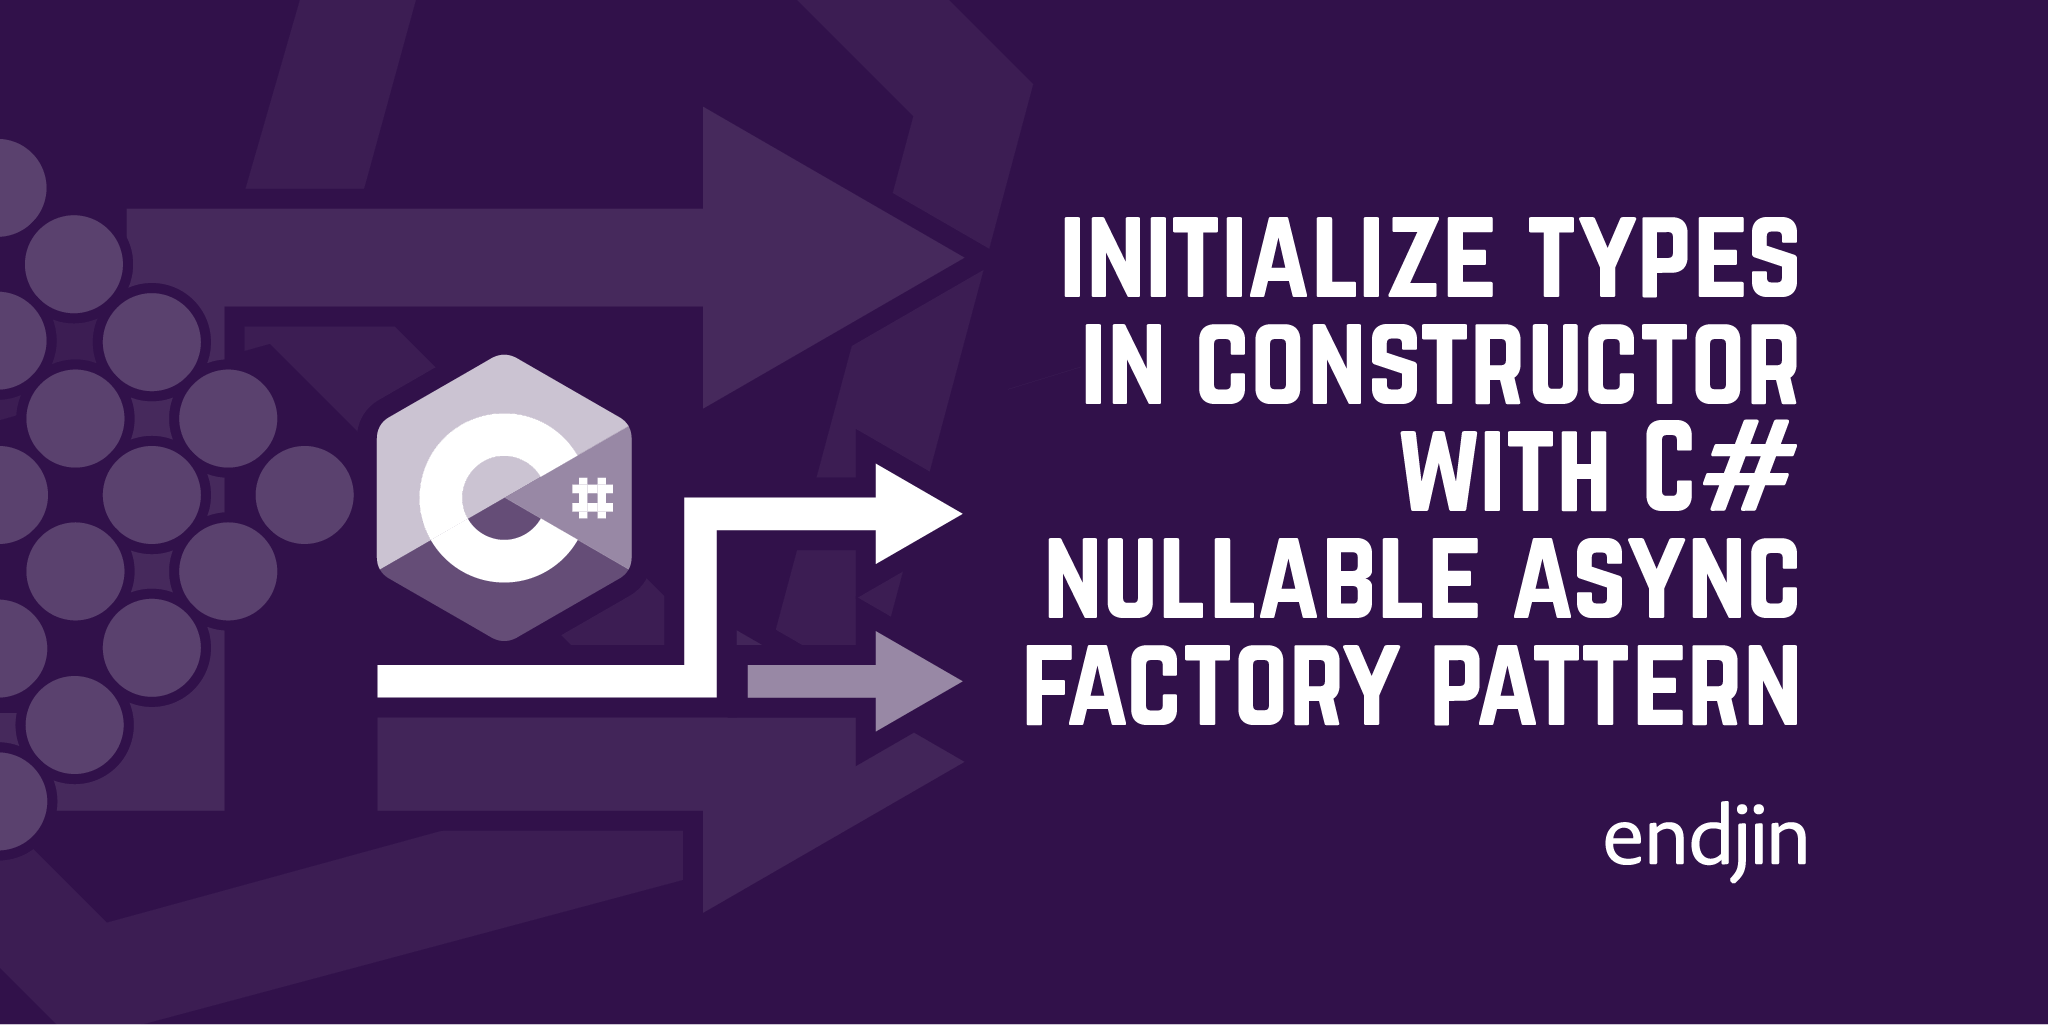 How to fully initialize types in their constructor with C# nullable using the async factory pattern